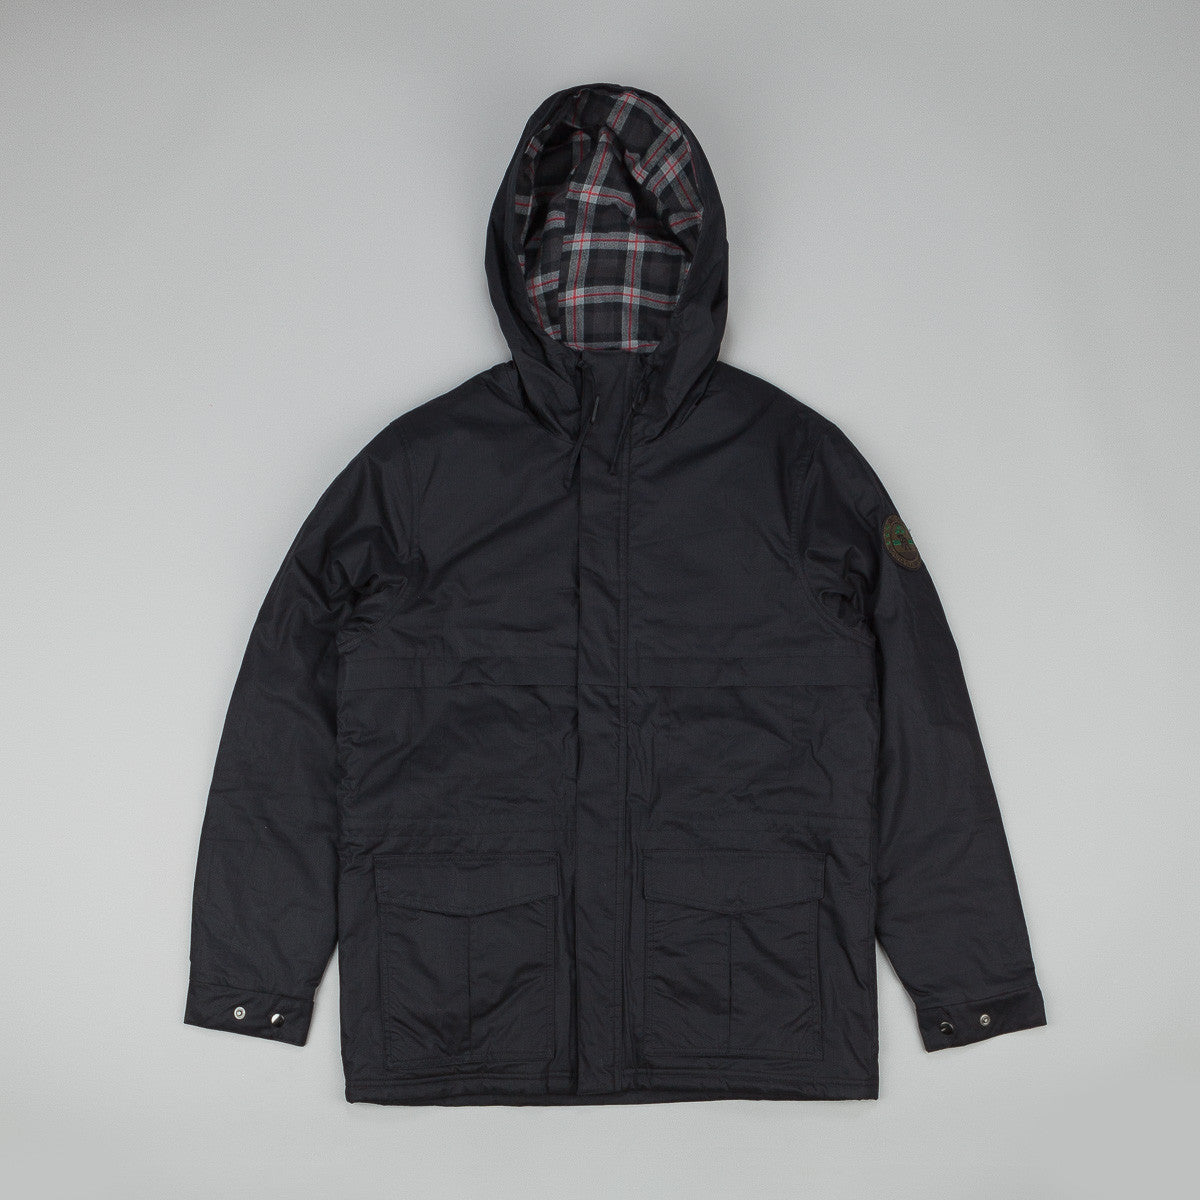 Nike SB P Rod Highlands Jacket